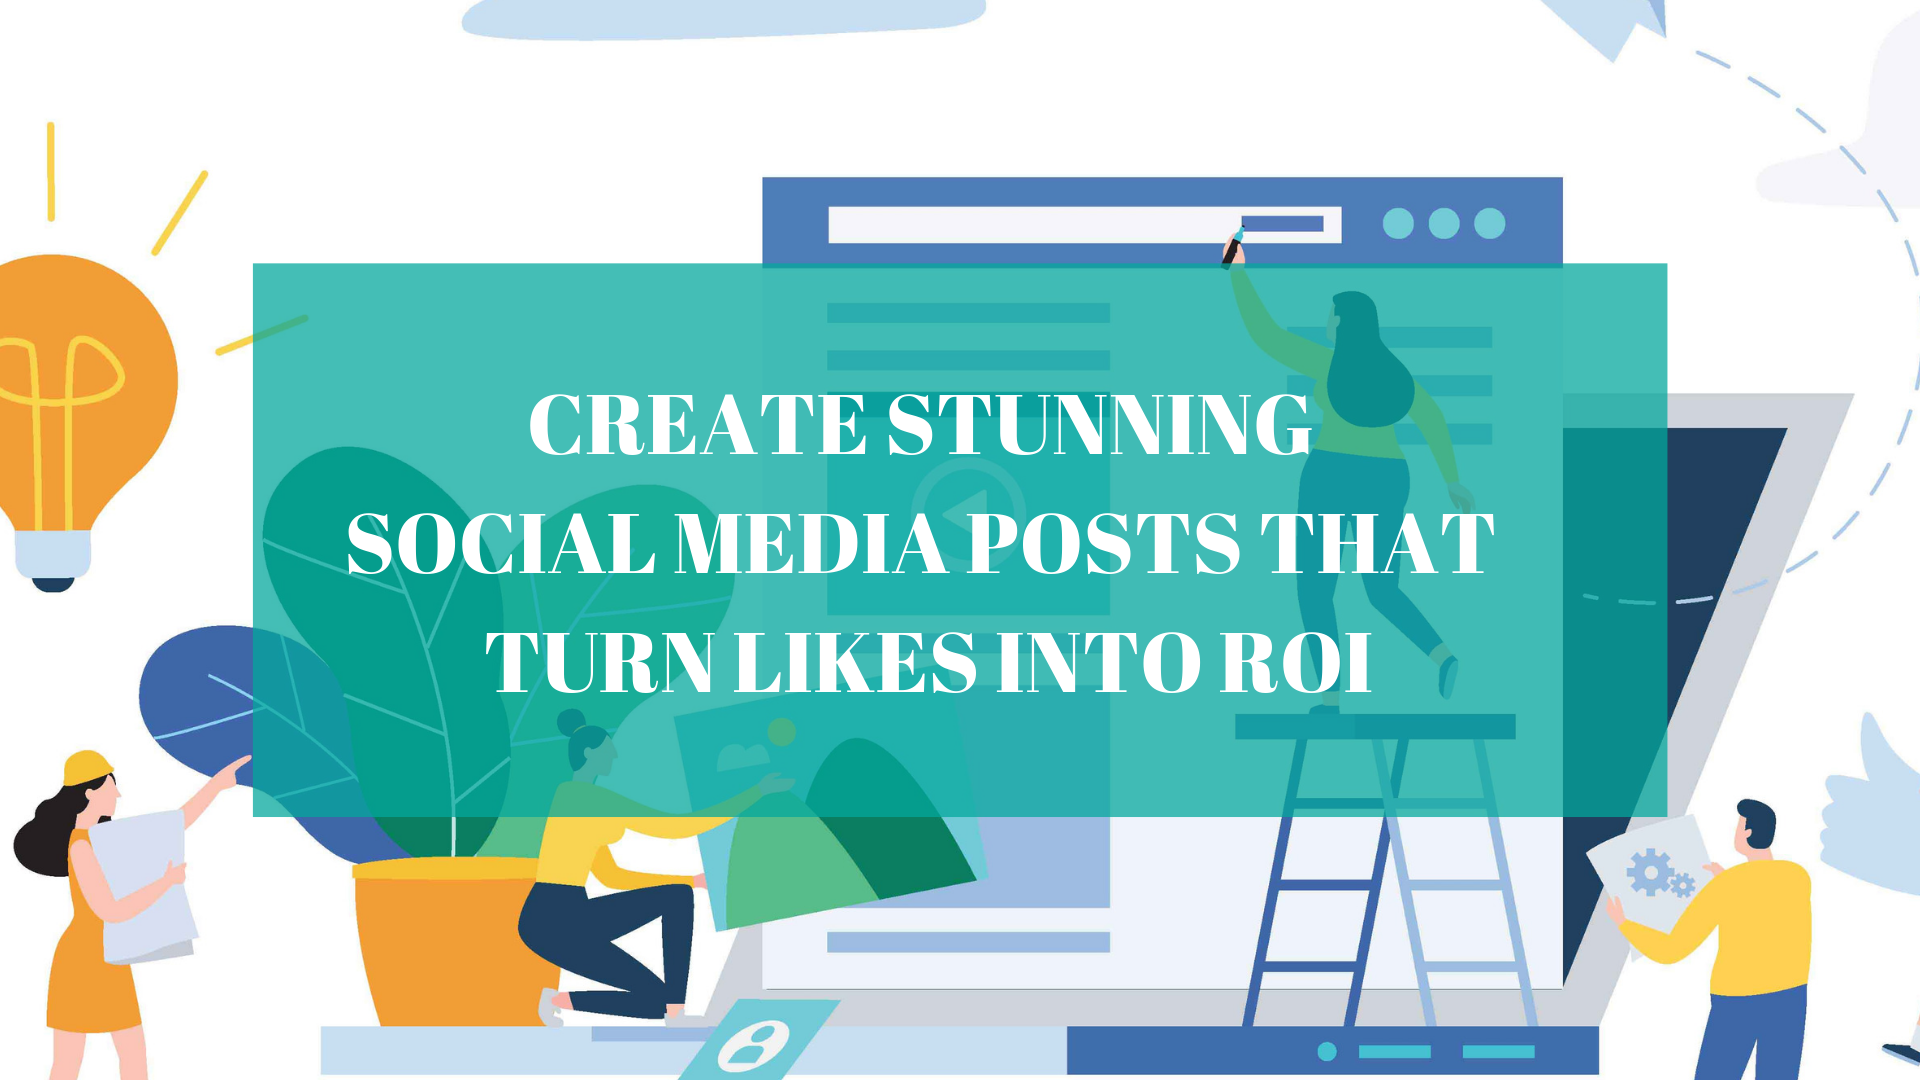 How to Create Stunning Social Media Posts that Turn Likes into ROI